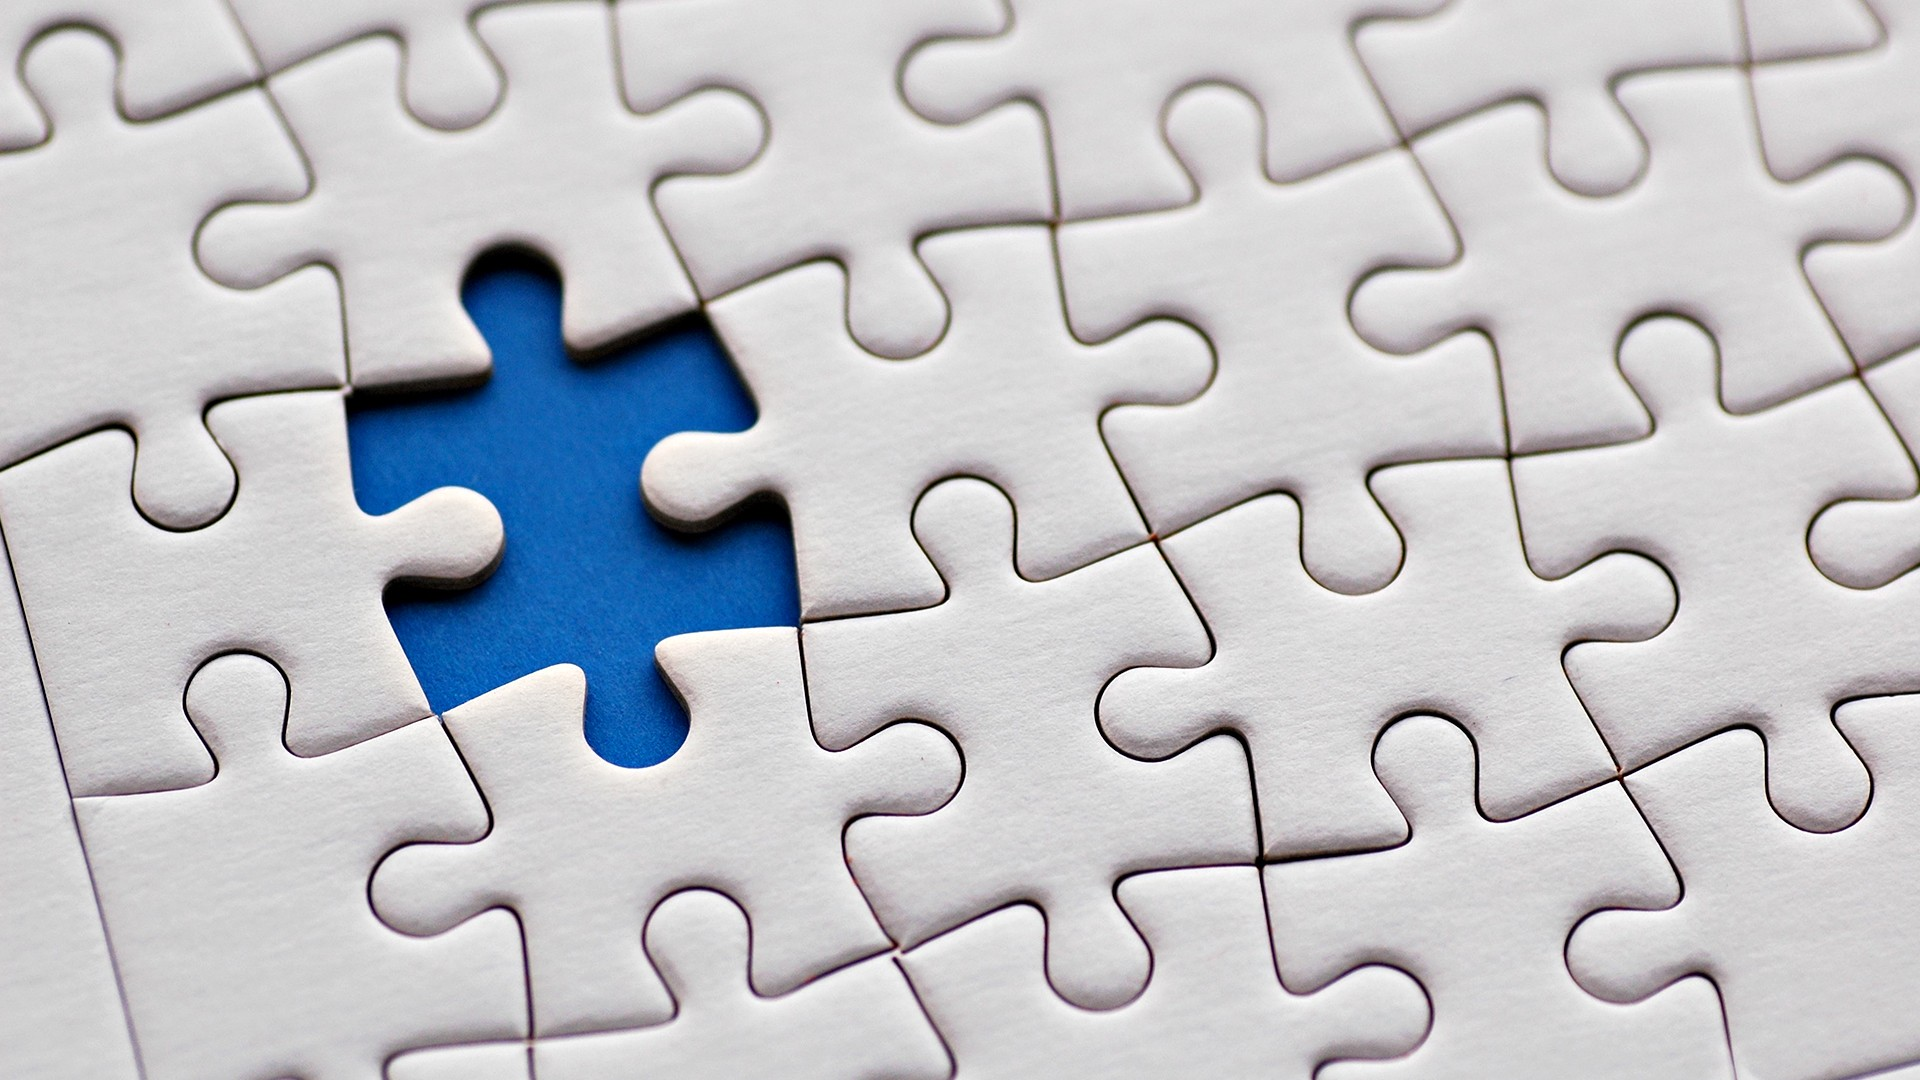 23 Puzzle Hd Wallpapers Backgrounds Wallpaper Abyss